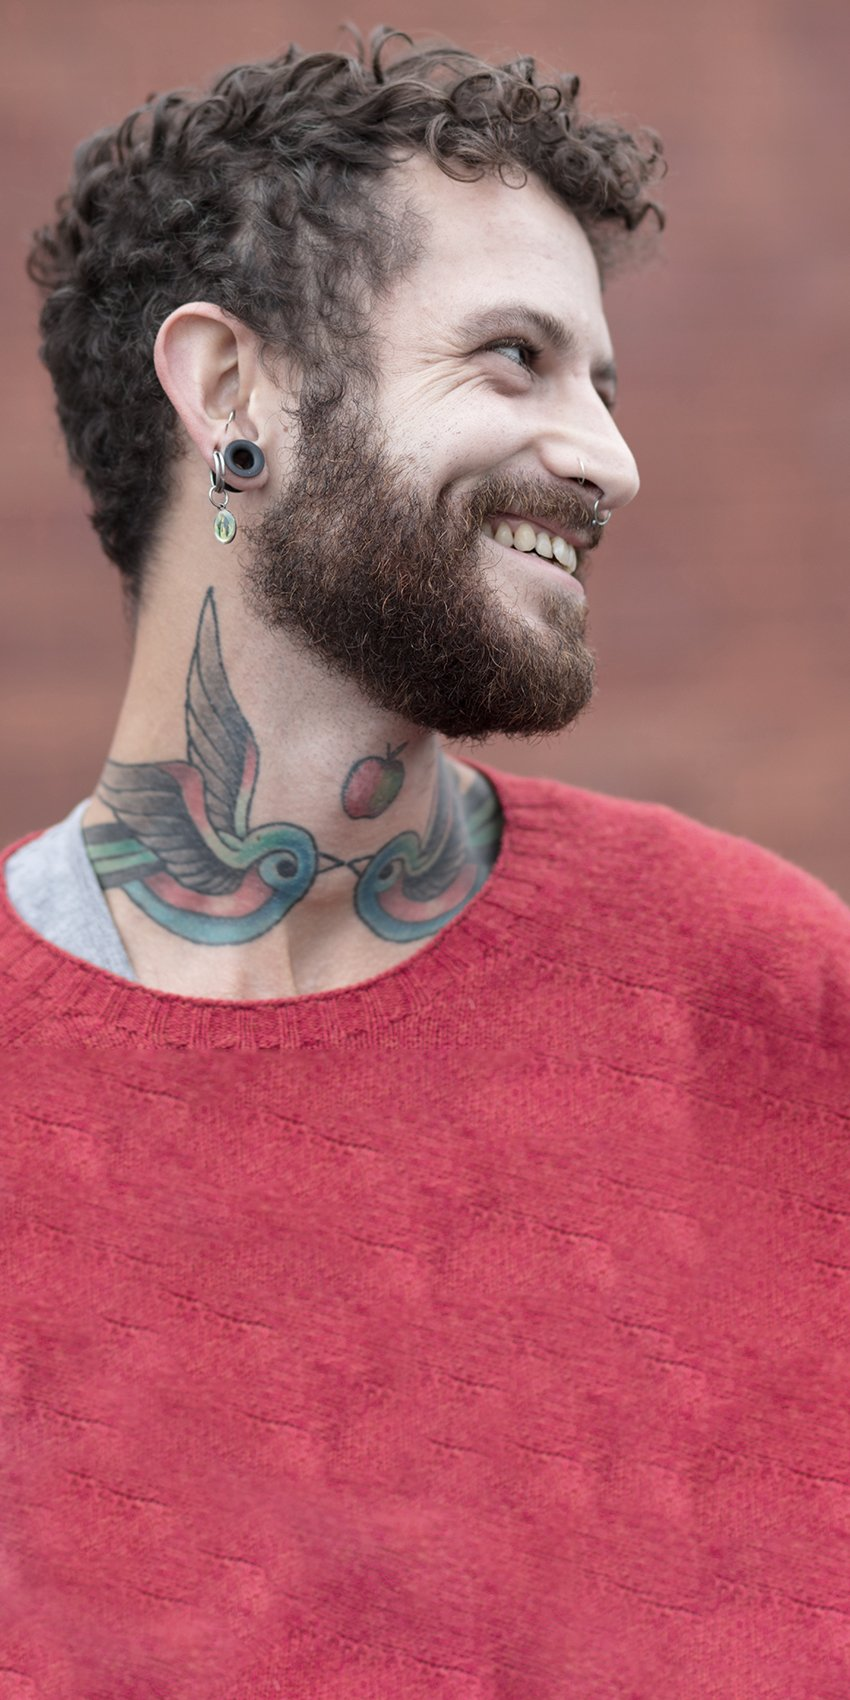 Man with tattoo and ear piercing